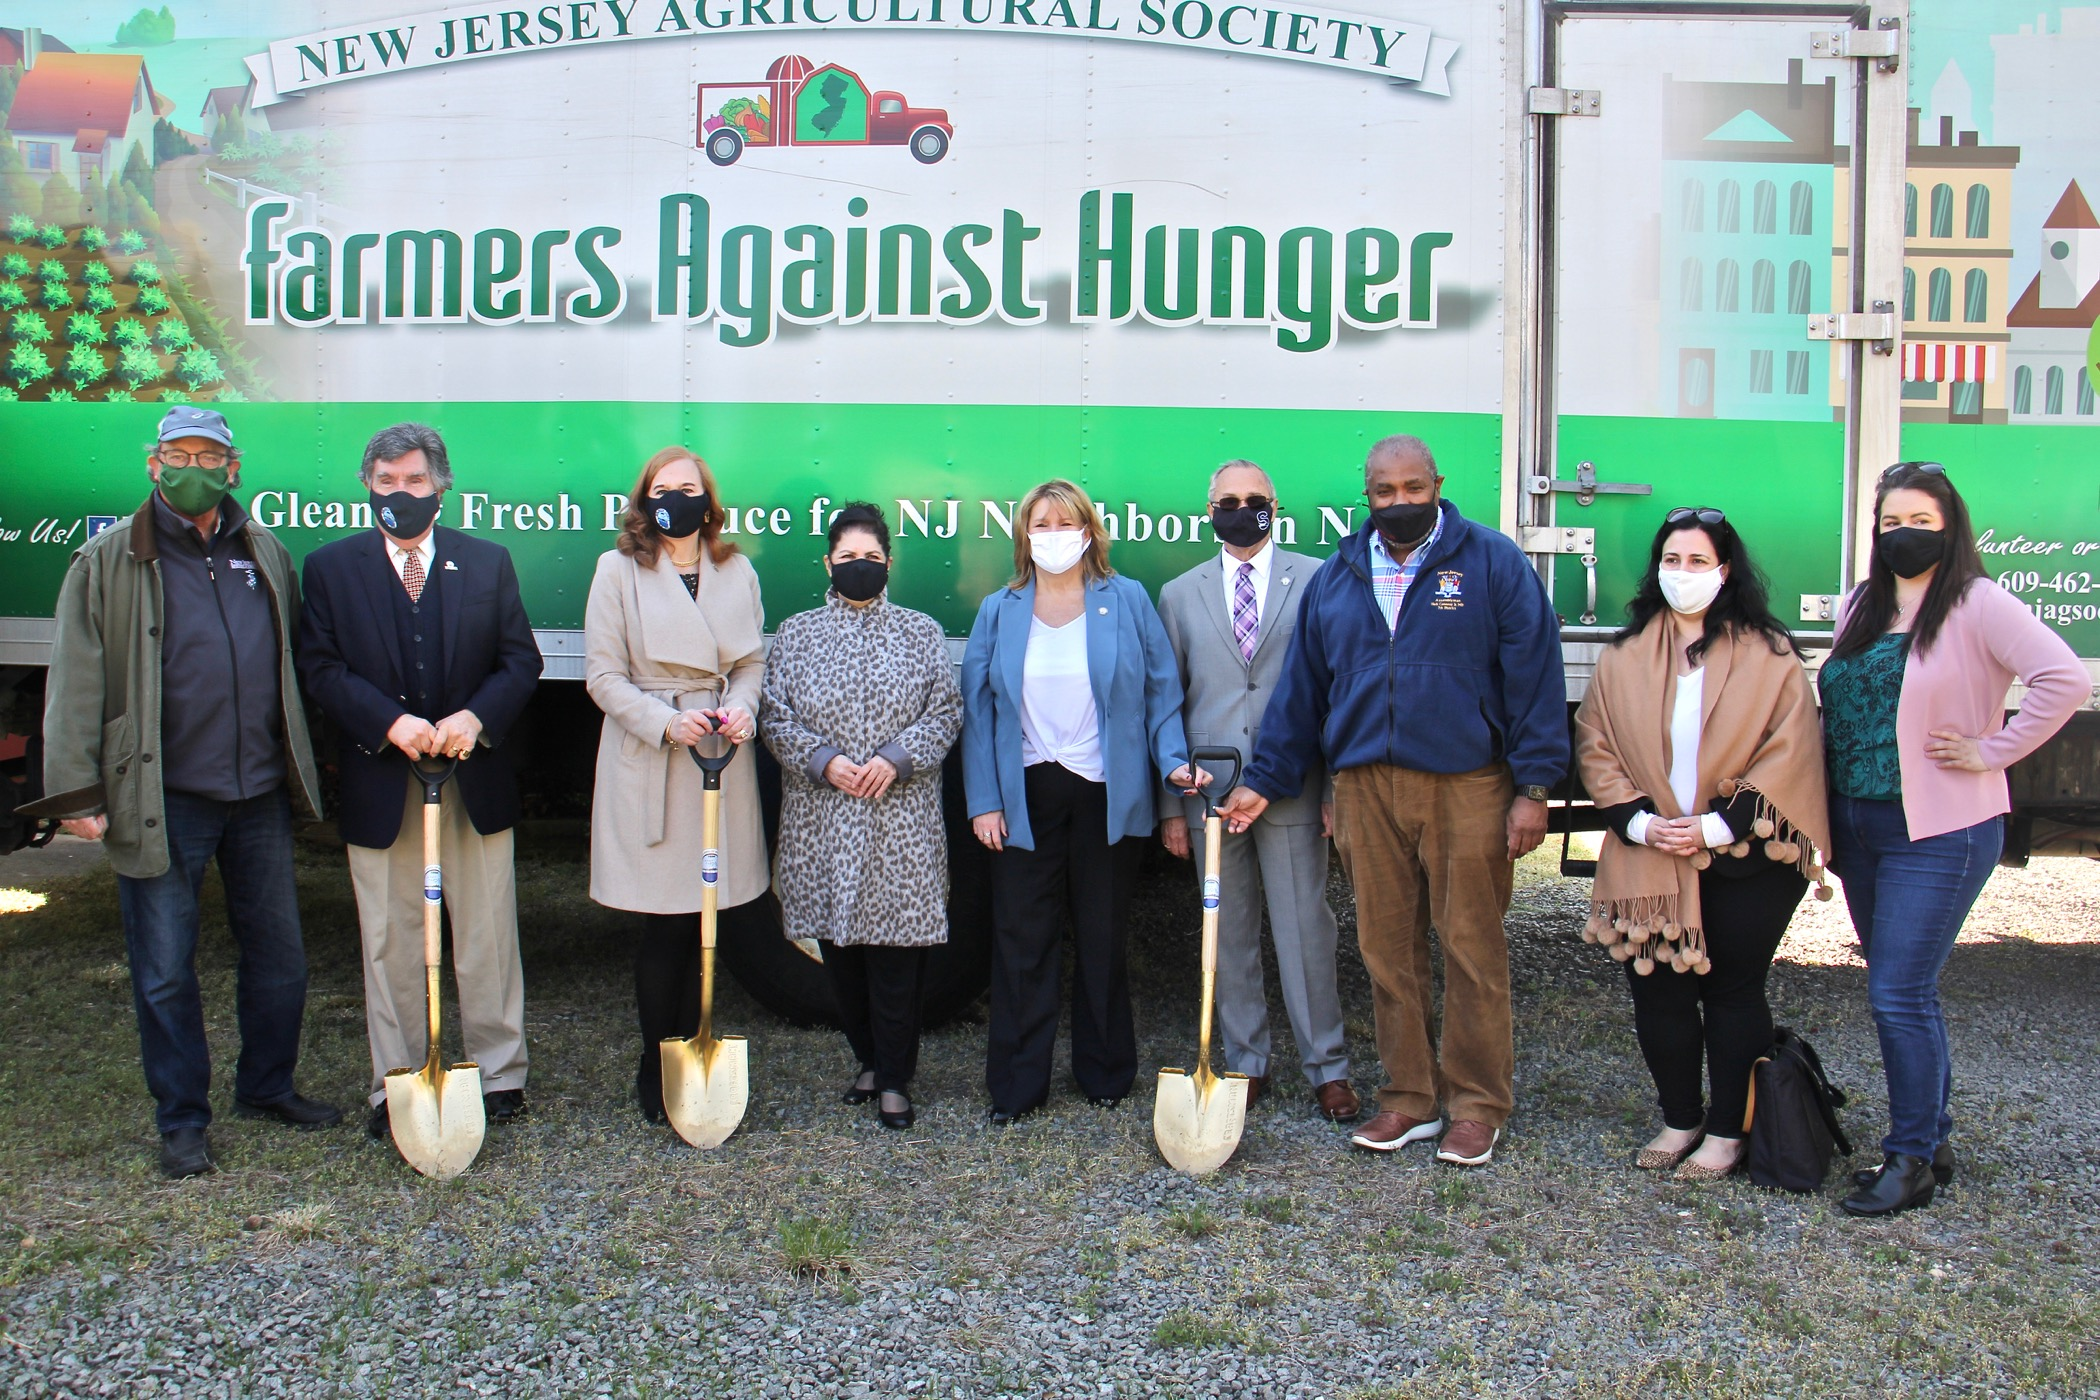 State and local officials celebrate the groundbreaking for the Farmersa Against Hunger  Laurel Run Land Stewardship Center in Delran, N.J. (Emma Lee/WHYY)